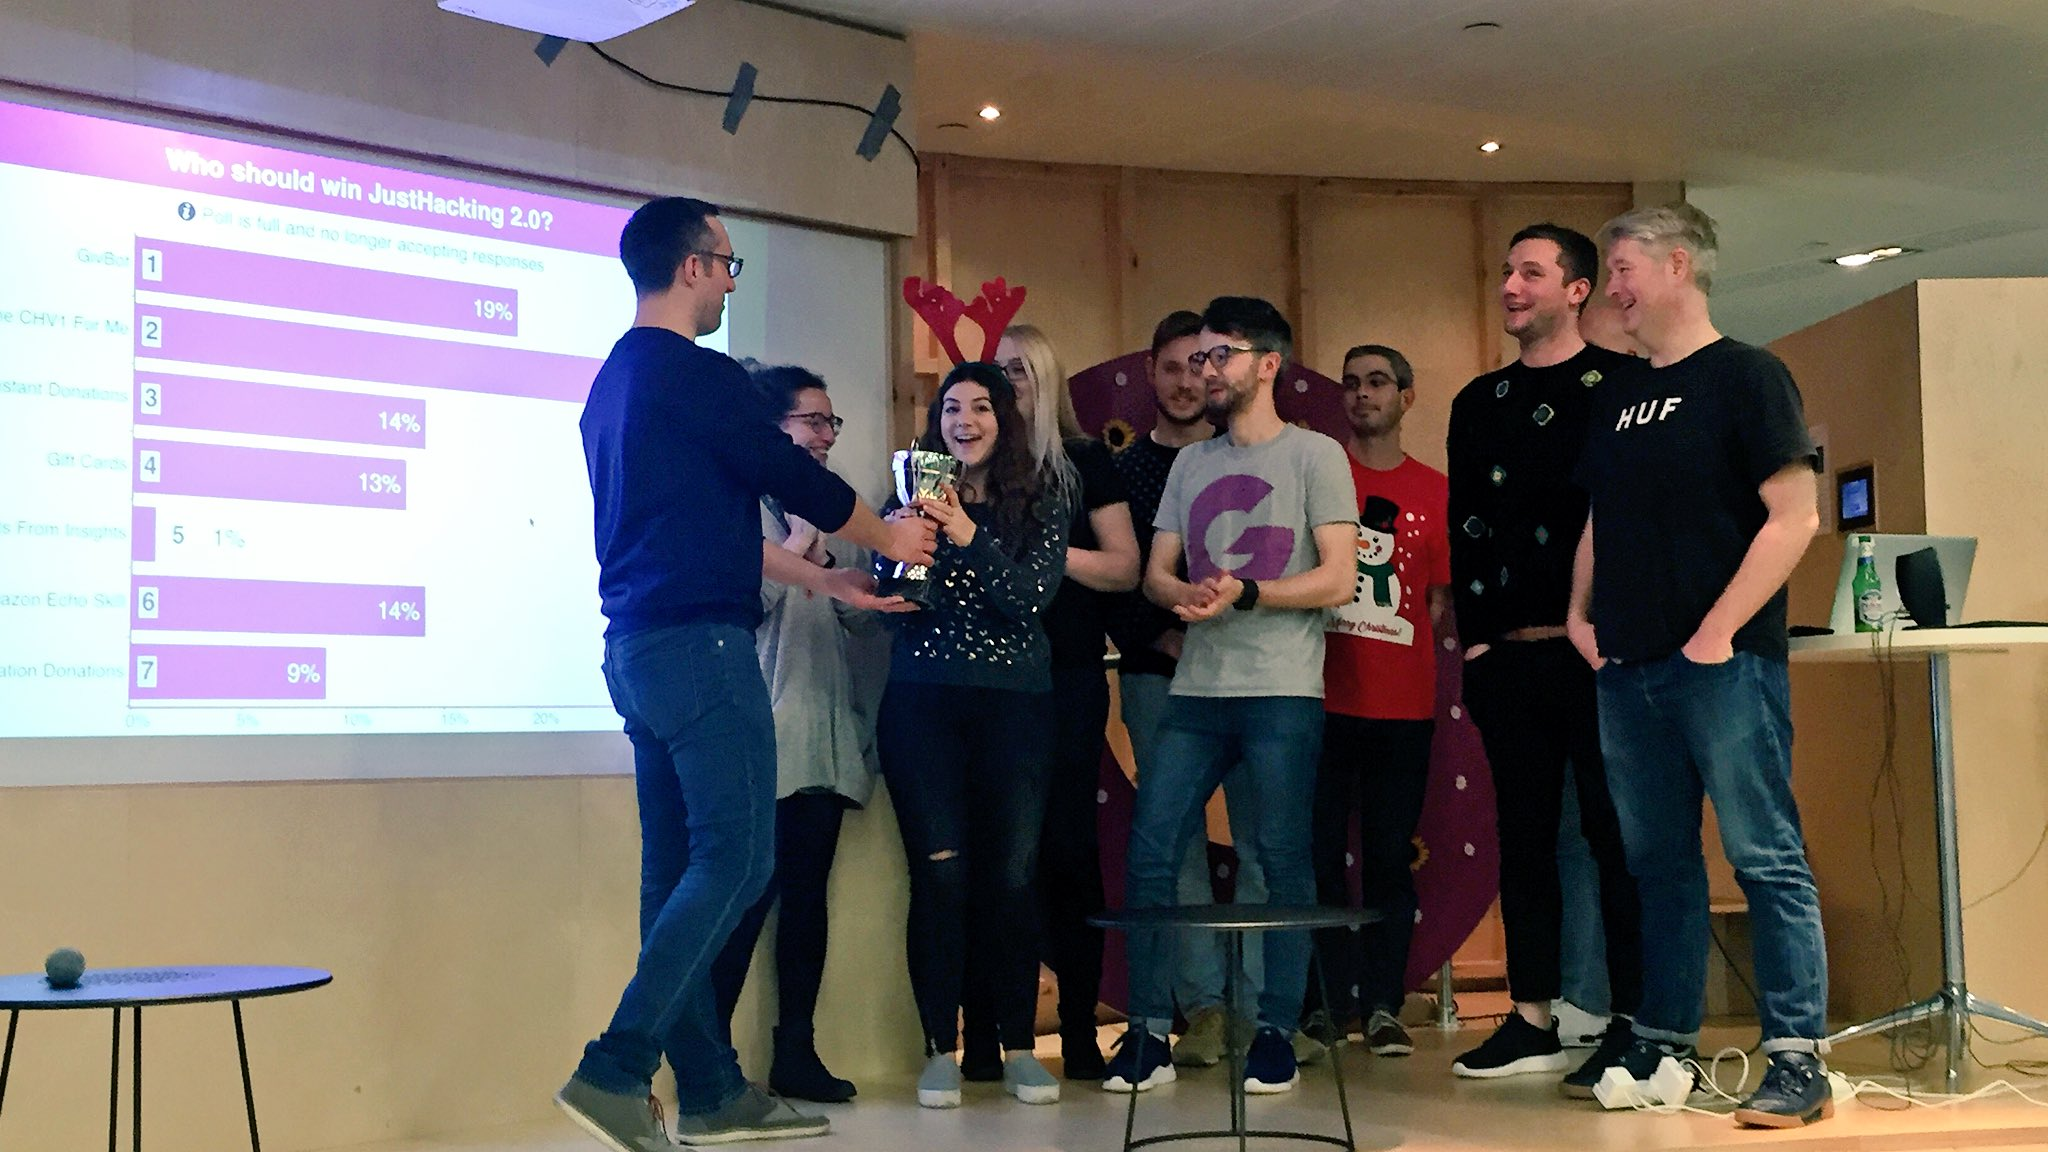 Huge congratulations to the winning team of @JustGiving Hackathon 2016!!! #justhacking Well done to all teams! https://t.co/5vLaTexWzL